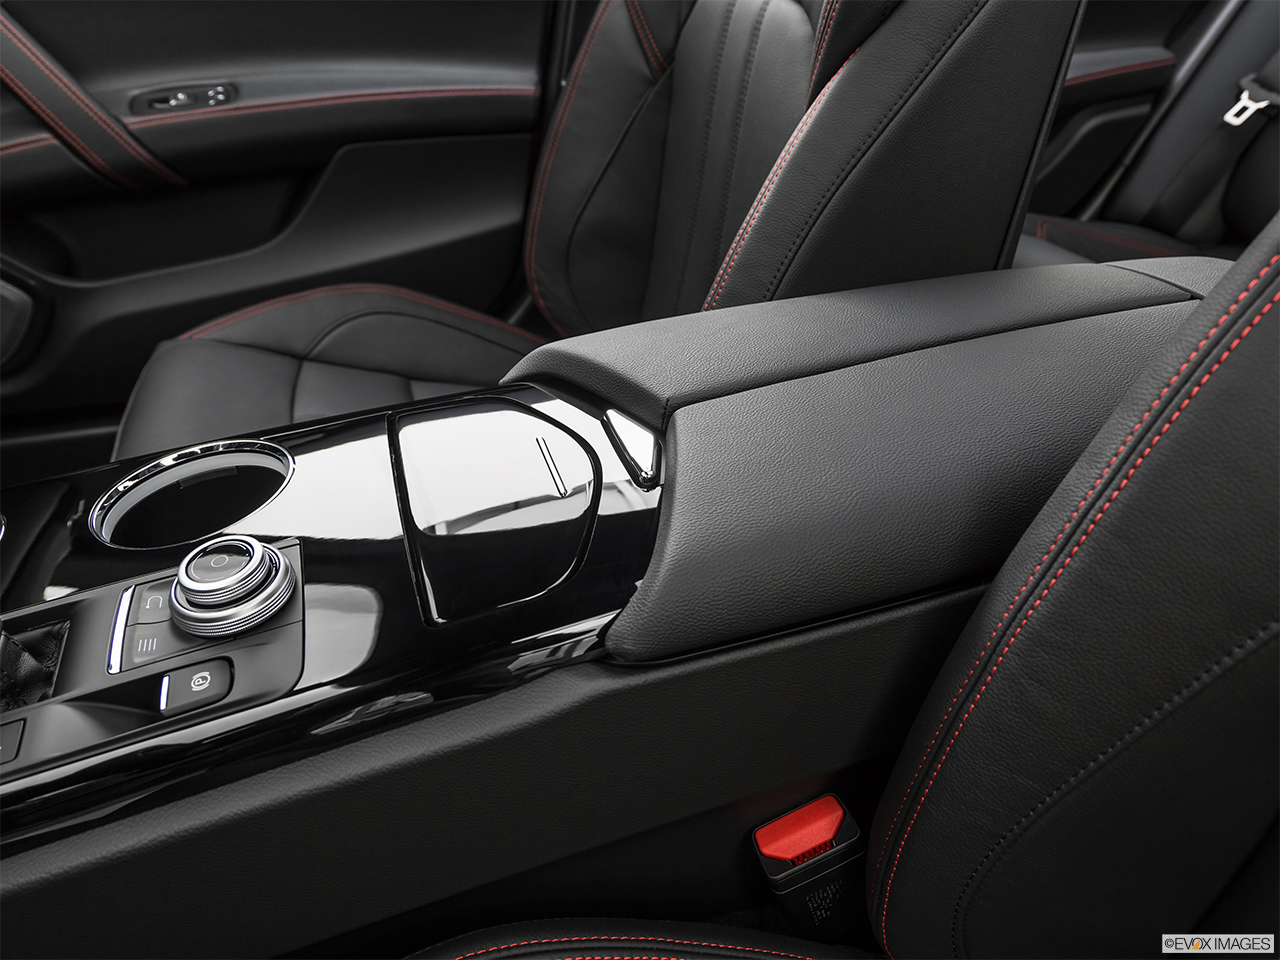 2019 Maserati Ghibli S Gransport Front center console with closed lid, from driver's side looking down